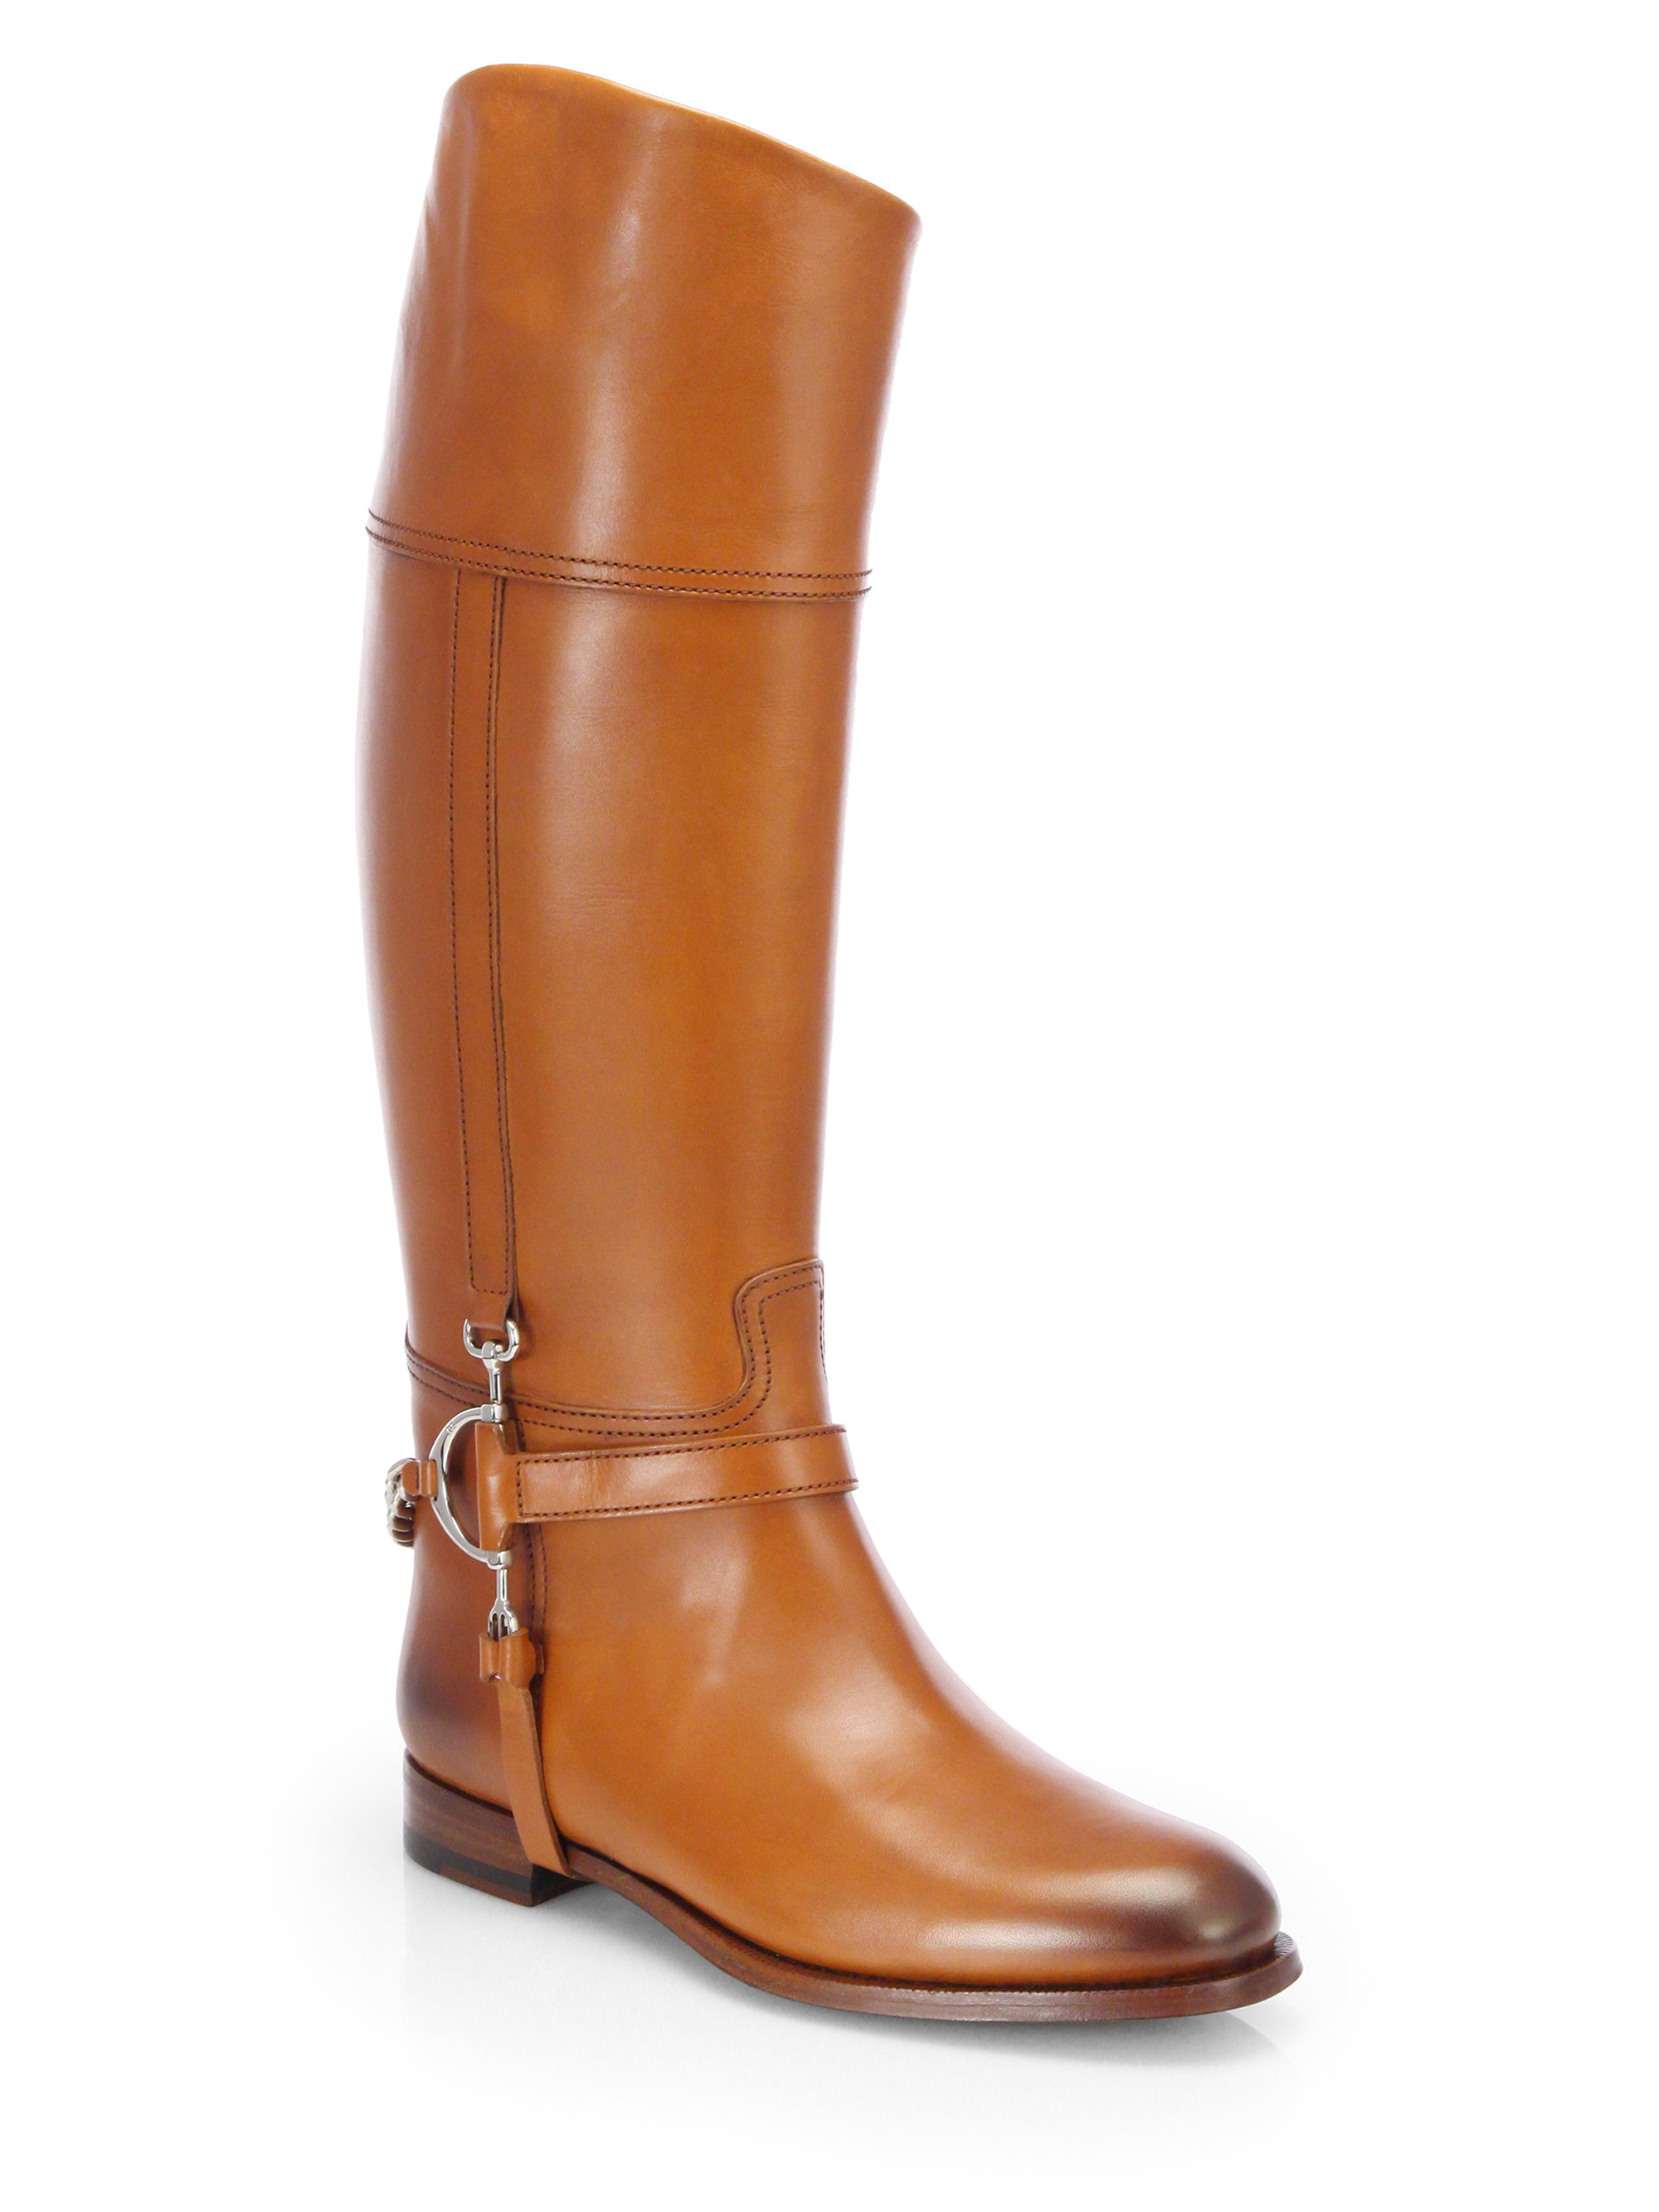 Womens leather gloves australia - Collection Sandra Harness Leather Riding Boots In Brown Tan Lyst